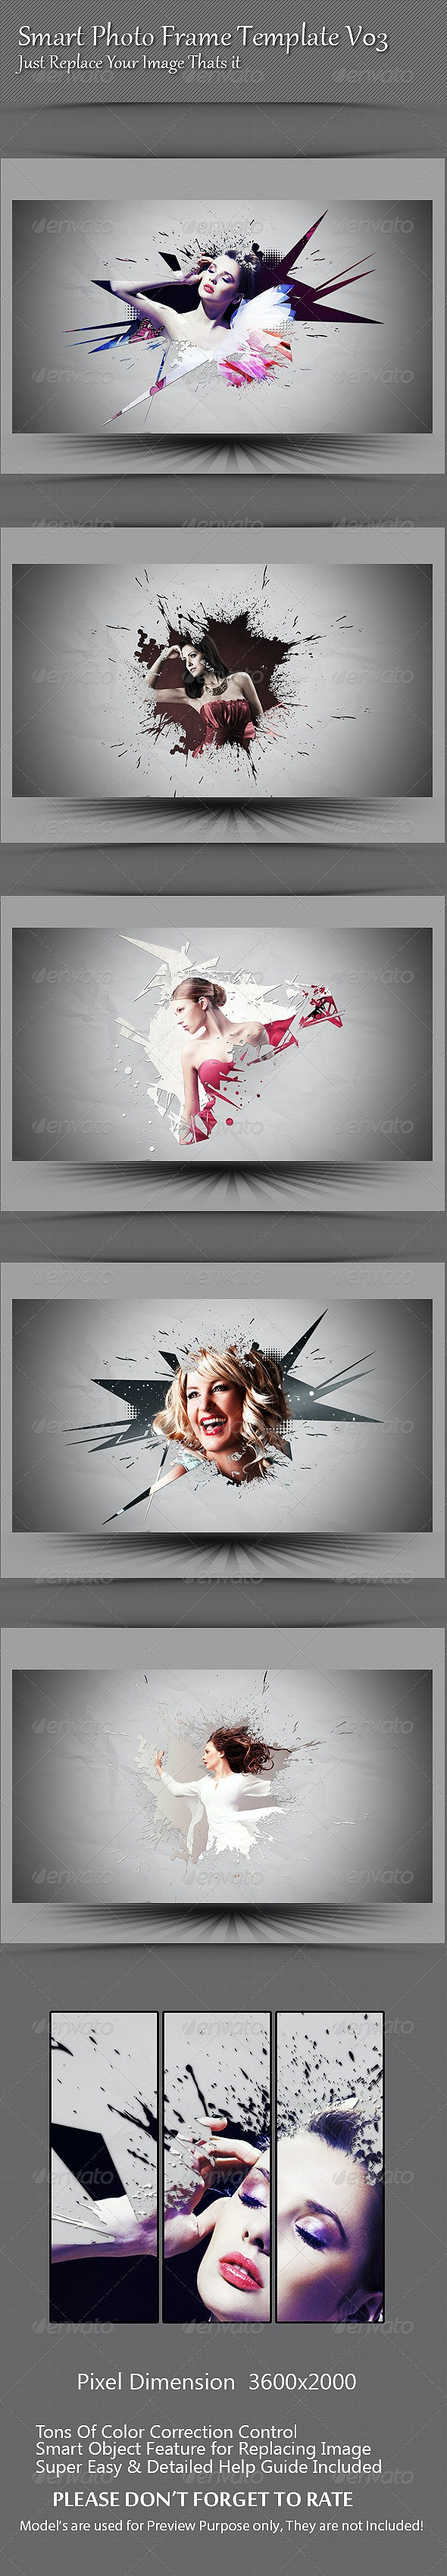 Smart Photo Frame Template V03 - Photo Templates Graphics